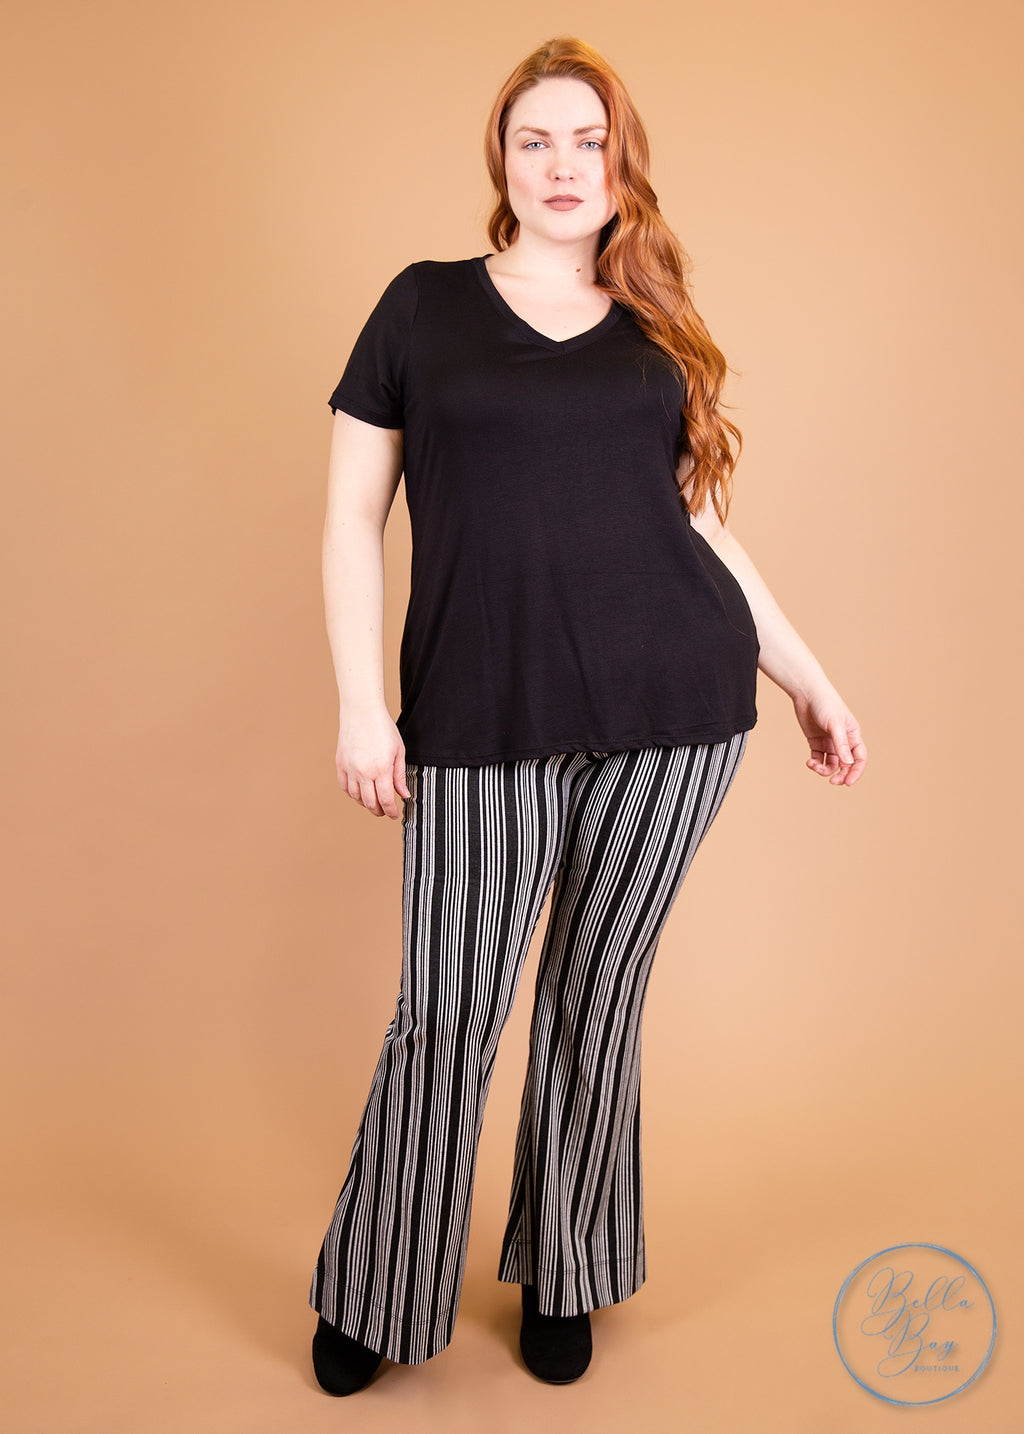 Paisley Raye Ginger Kick Flare Pants- Black and White Stripe (3X) - Paisley Raye with Bella Bay Boutique, shop now at  https://shopbellabay.com/ or locally in Newport Oregon